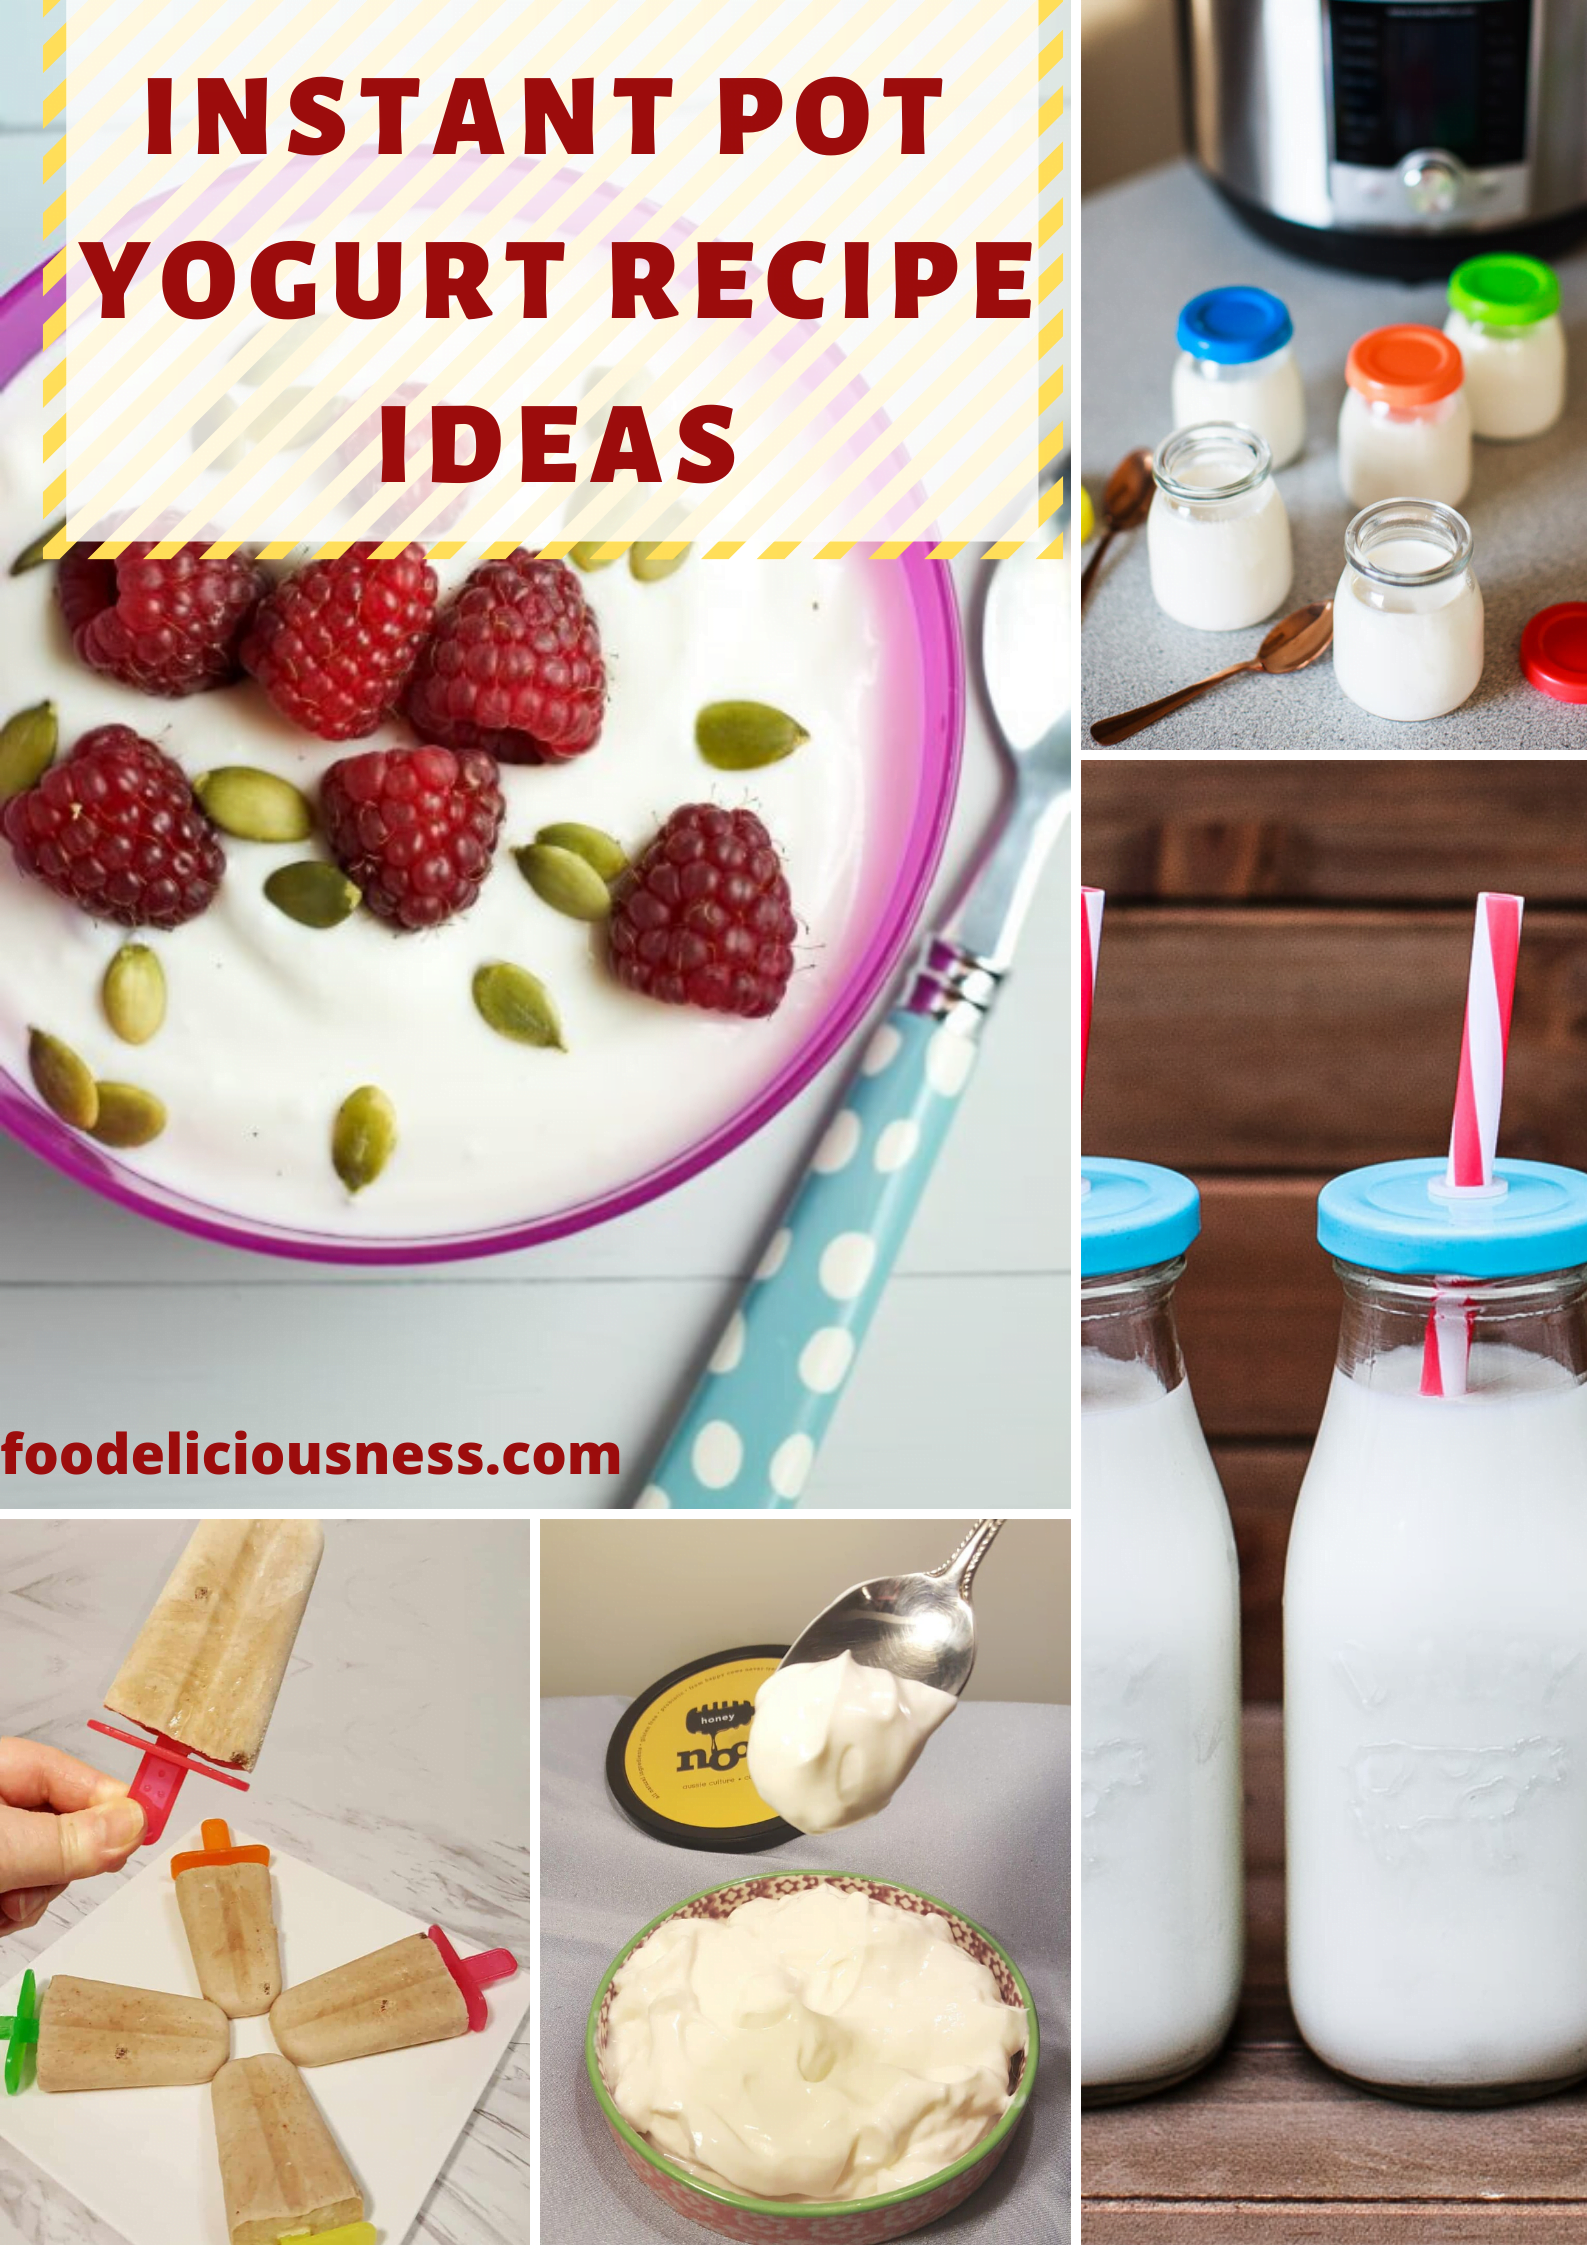 Have you ever tried to make yogurt in instant pot? Delicious and healthy yogurt is always a good idea if you\'re a healthy diet supporter. It is cheaper, the taste of homemade yogurt is awesome and it is a very simple and quite exciting process. #instantpotyogurtrecipegreek #instantpotyogurtrecipedairyfree #instantpotyogurtrecipeideas @foodeliciousness